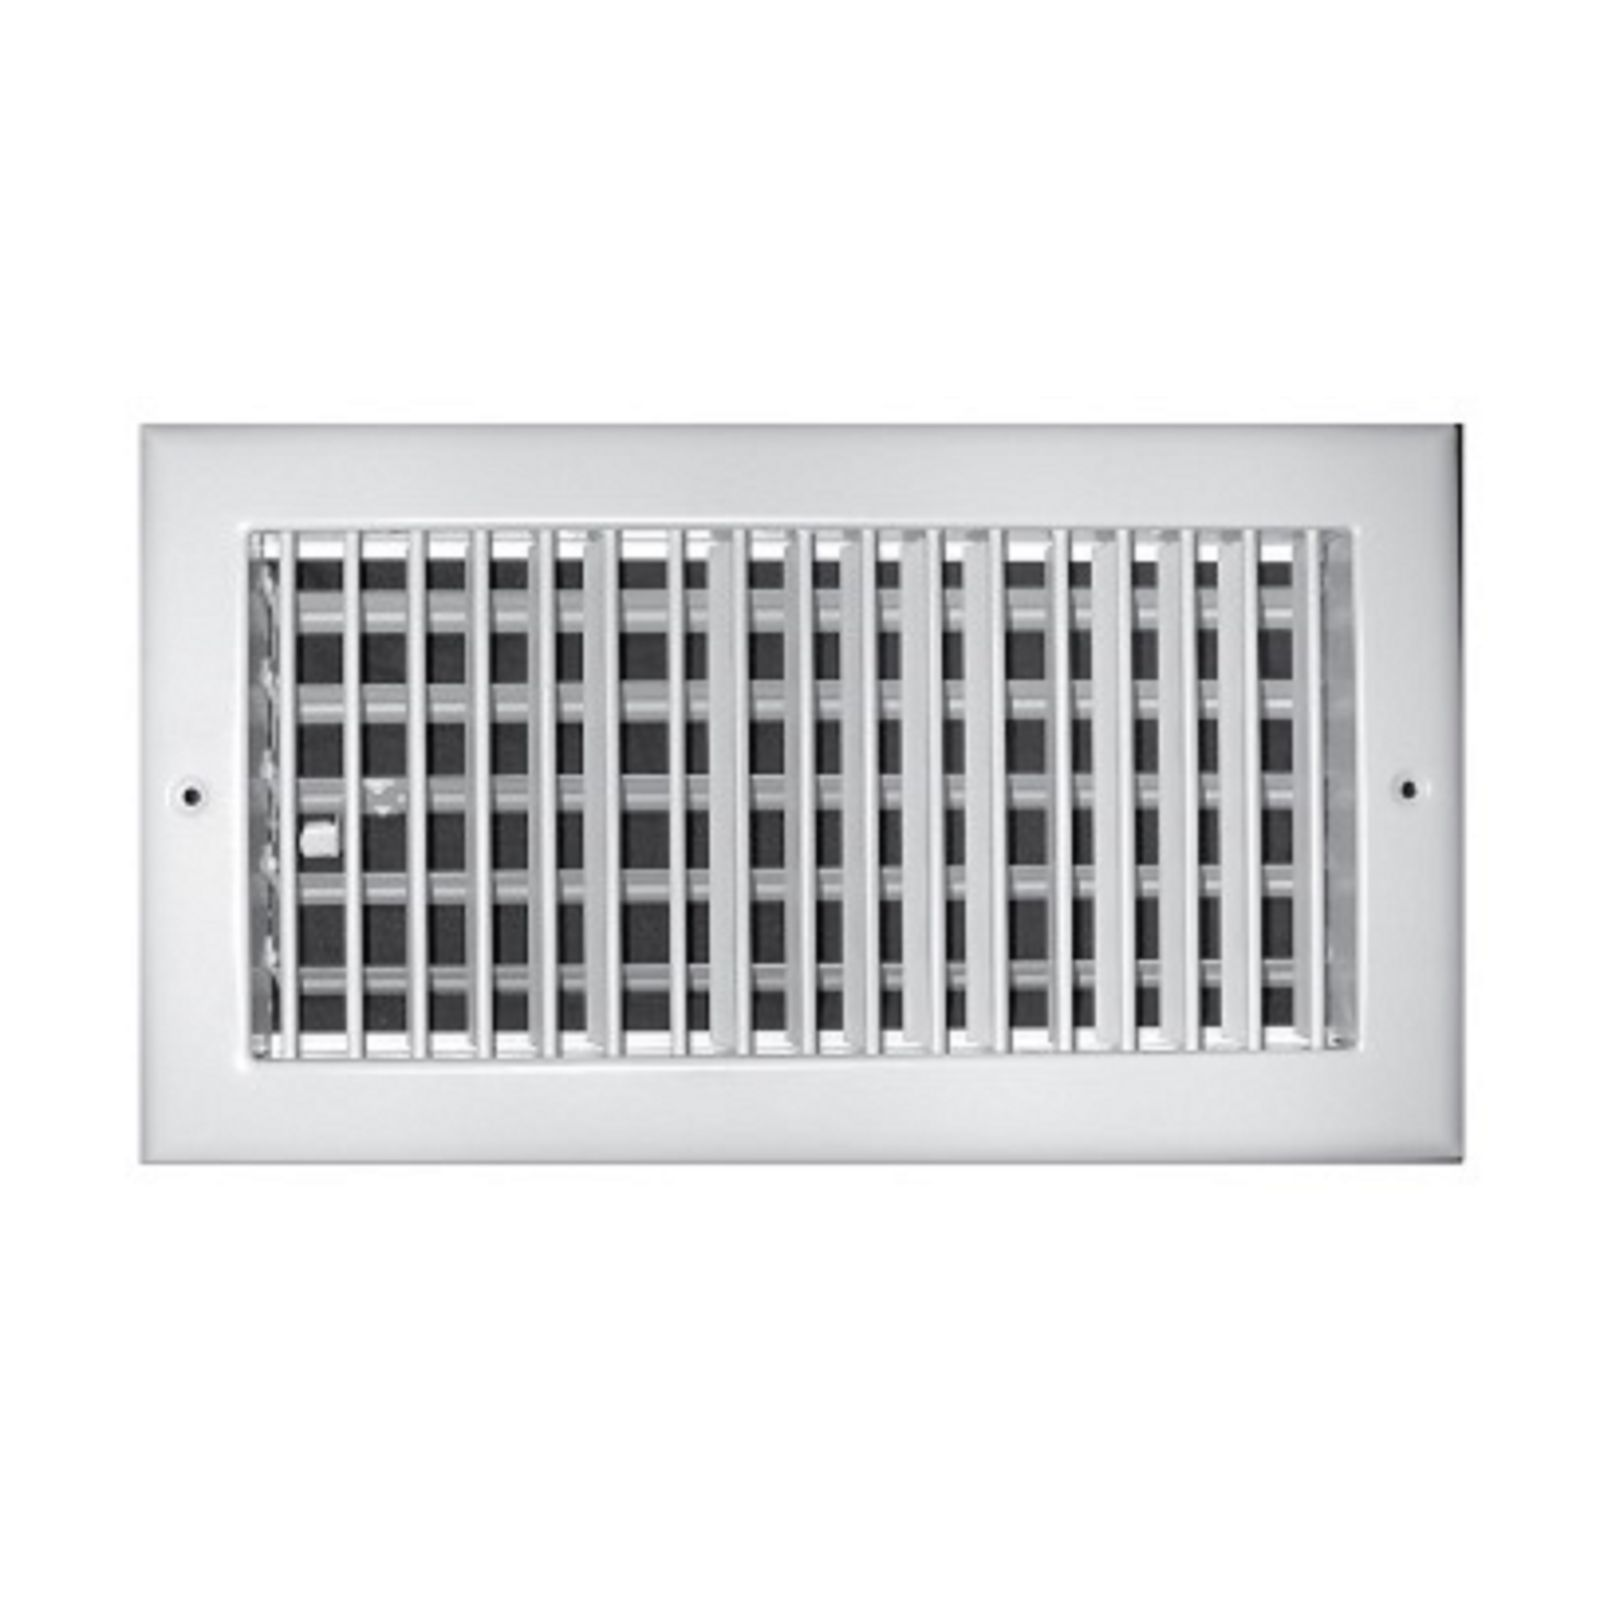 "TRUaire A210VM 14X08 - Aluminum Adjustable 1-Way Wall/Ceiling Register, Vertical, Multi Shutter Damper, White, 14"" X 08"""